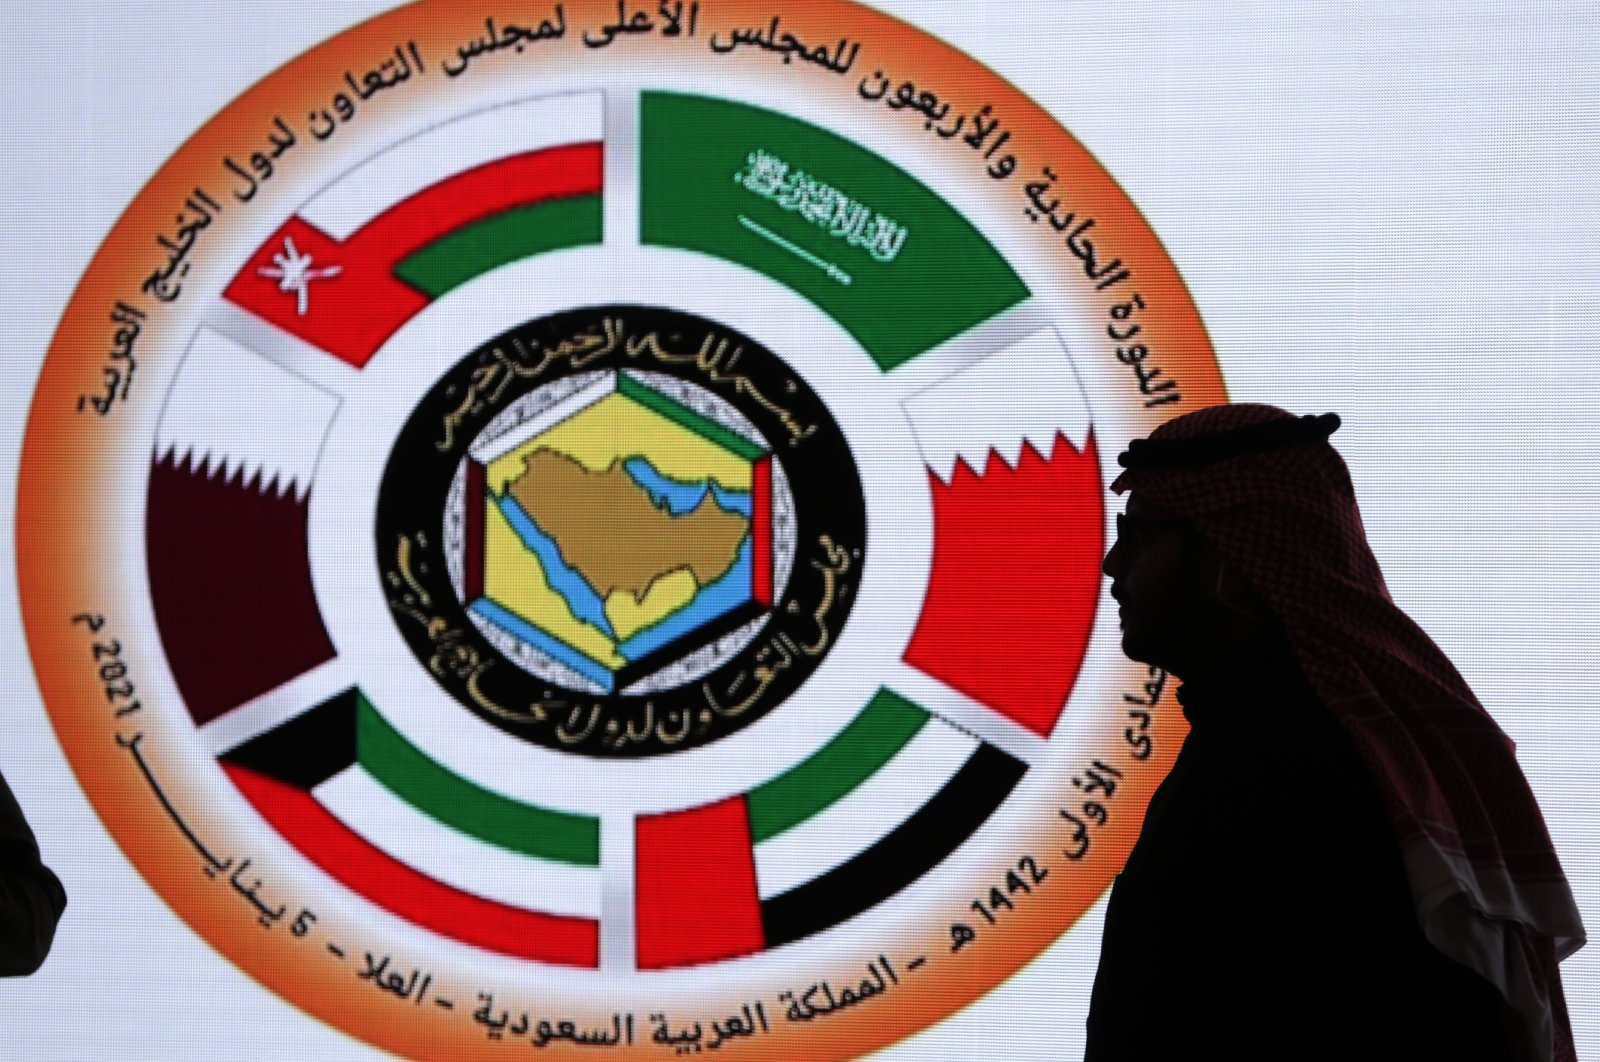 A Saudi television anchor stands in front of the logo of the 41st Gulf Cooperation Council (GCC) at the media center in Al Ula, Saudi Arabia, Jan. 5, 2021. (AP Photo)